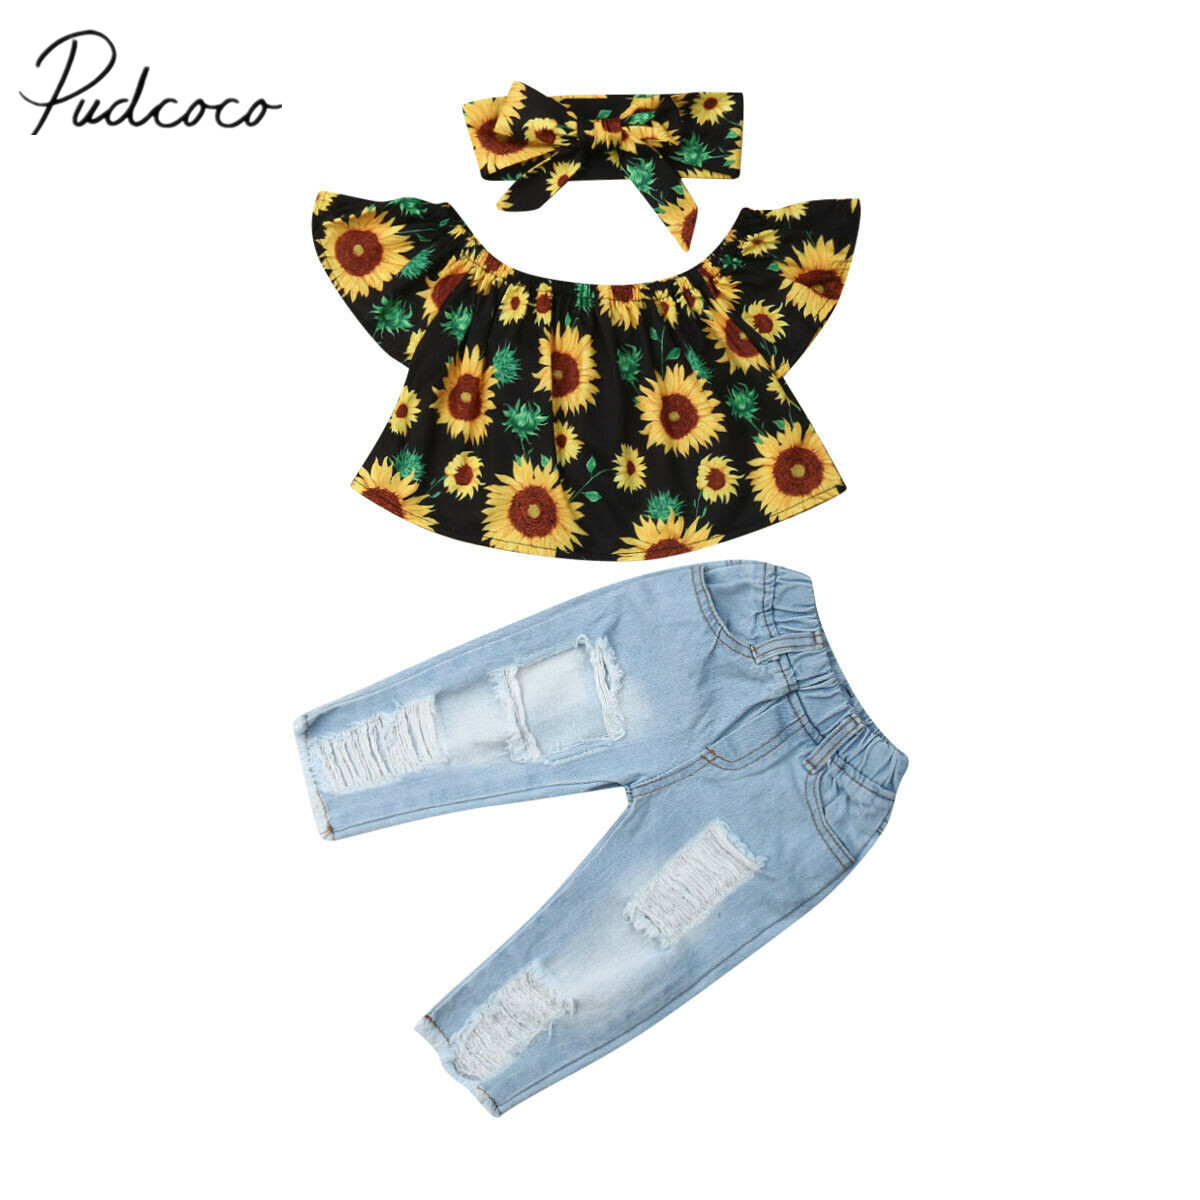 19a00407fa6a8 2019 Baby Summer Clothing Toddler Kids Baby Girl 3PCS Sets Sunflower Tops+ Ripped Hole Denim